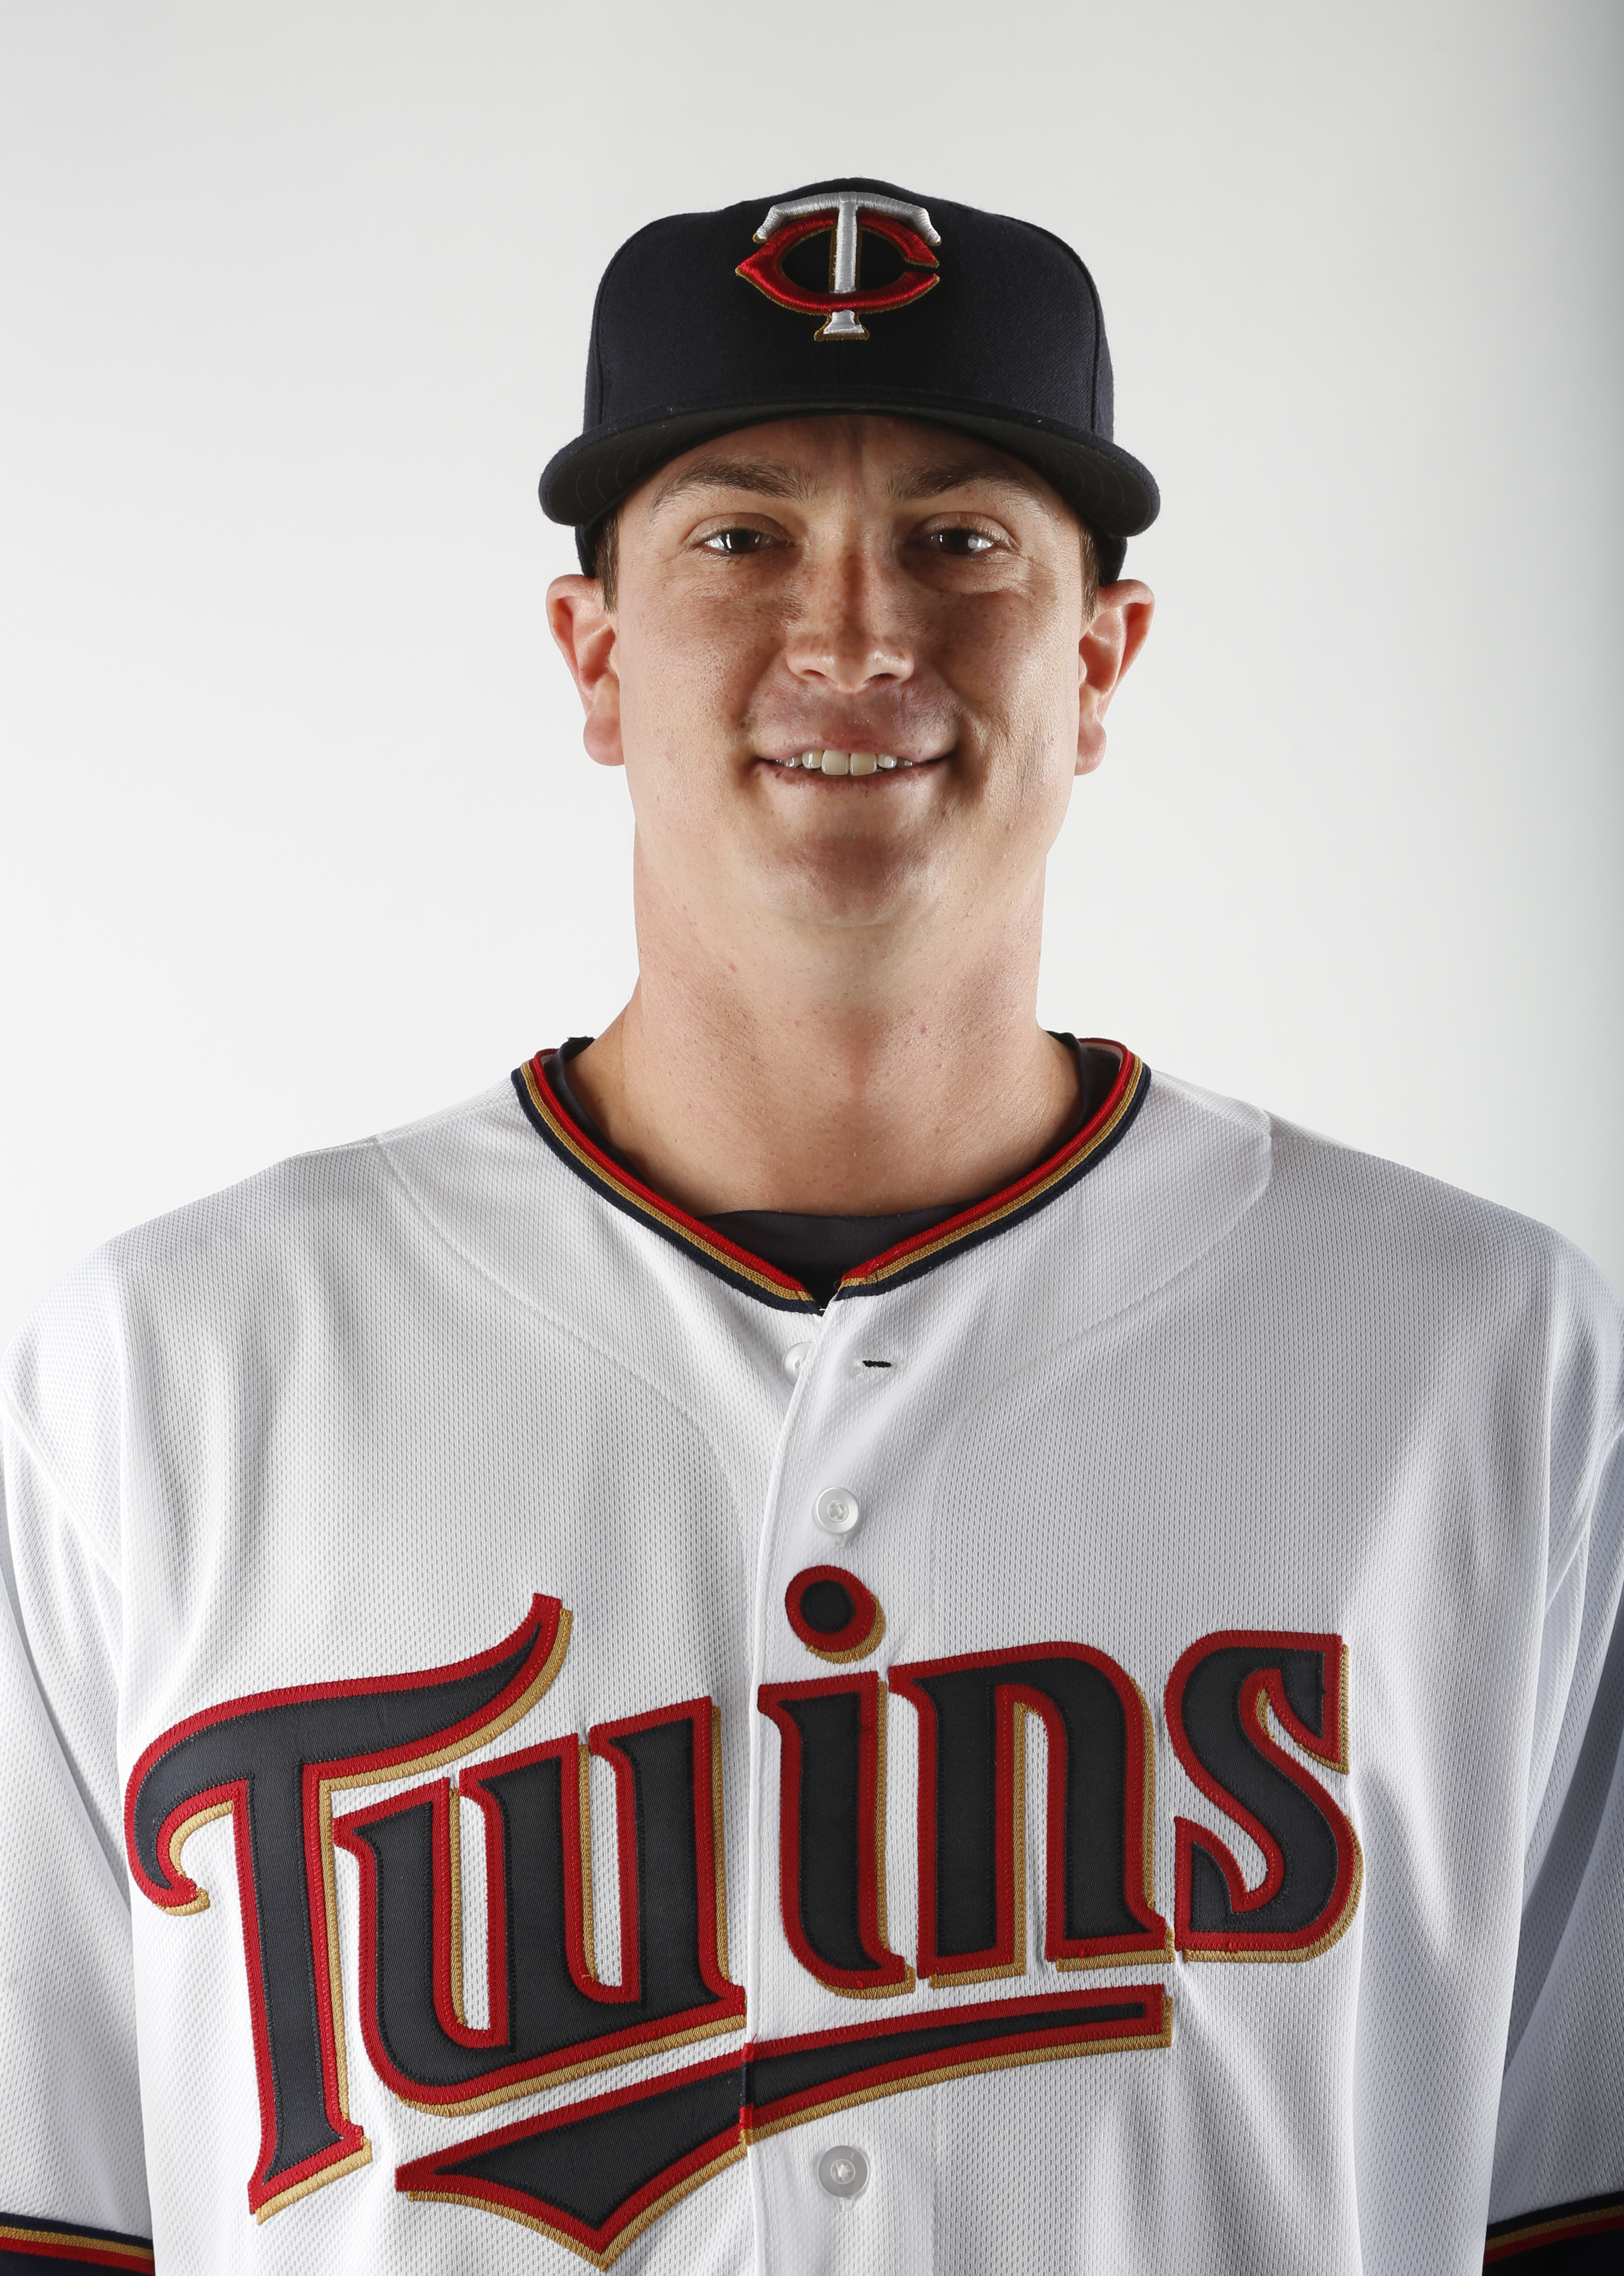 FORT MYERS, FL - MARCH 3:  Kyle Gibson #44 of the Minnesota Twins poses for a photo on March 3, 2015 at Hammond Stadium in Fort Myers, Florida.  (Photo by Brian Blanco/Getty Images)